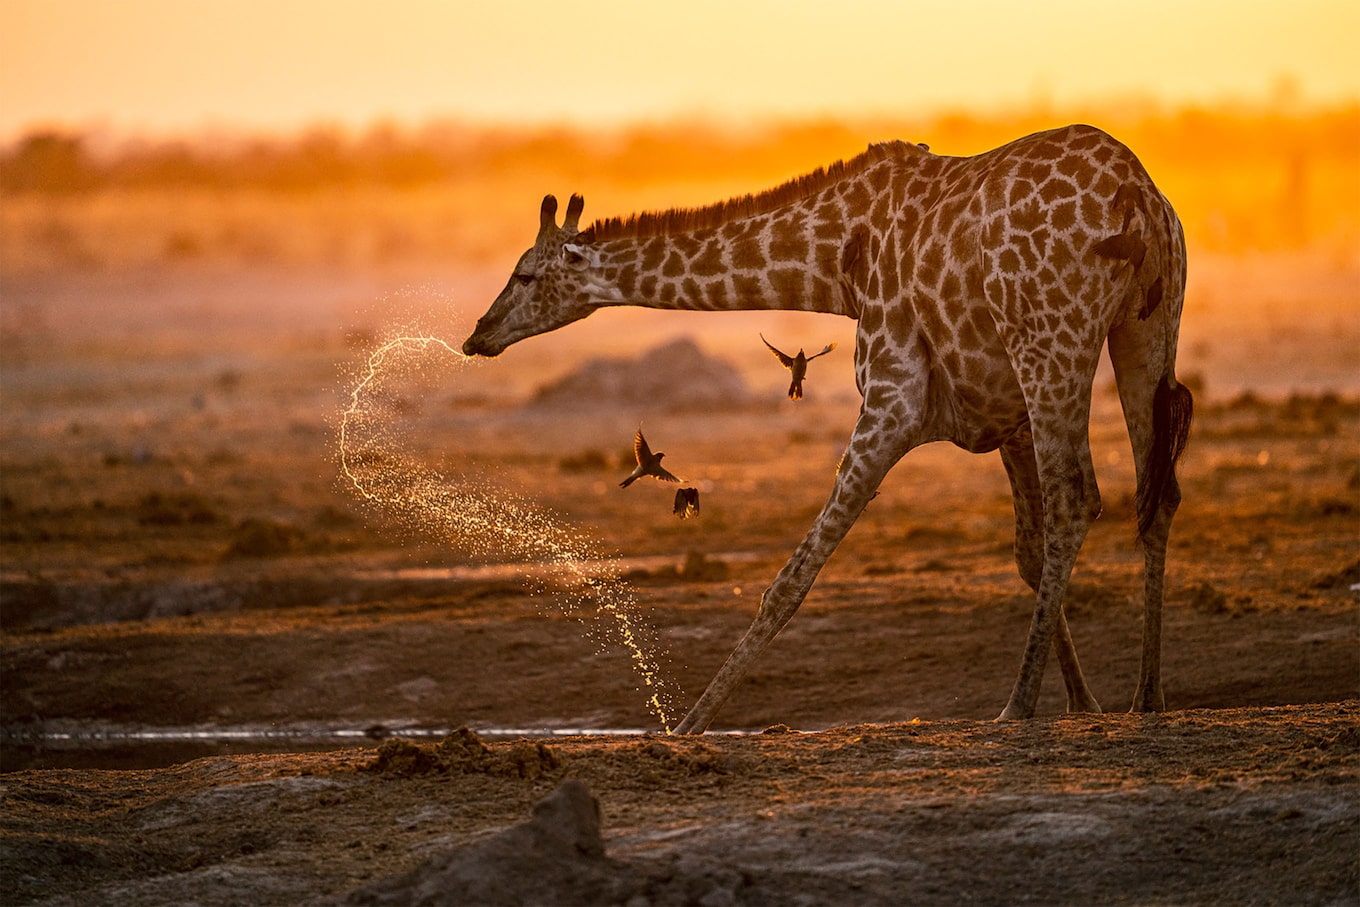 francis bompard sony alpha 7r3 a giraffe spits water while birds fly around